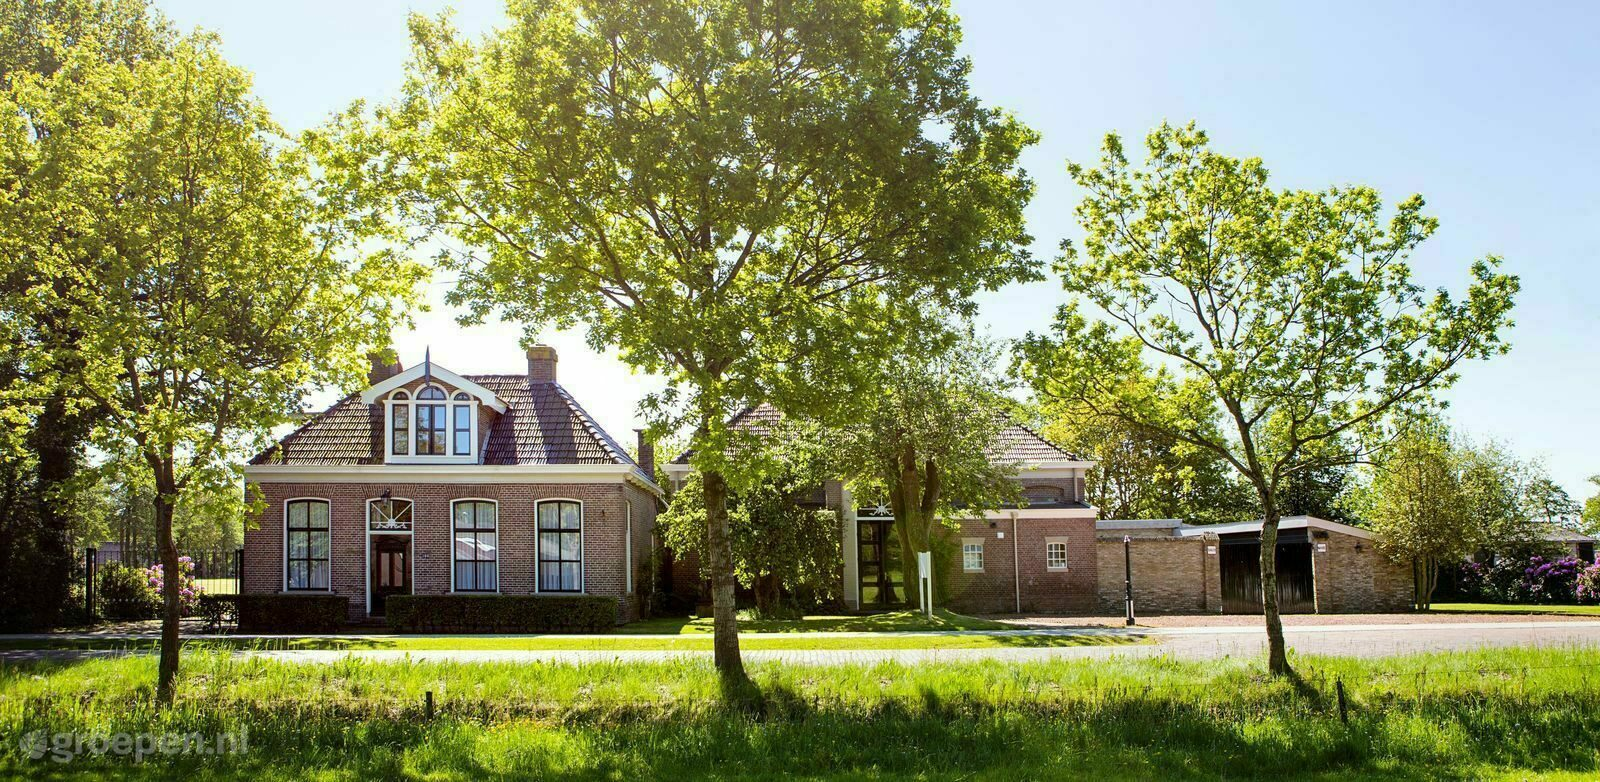 Group accommodation Wijnjewoude